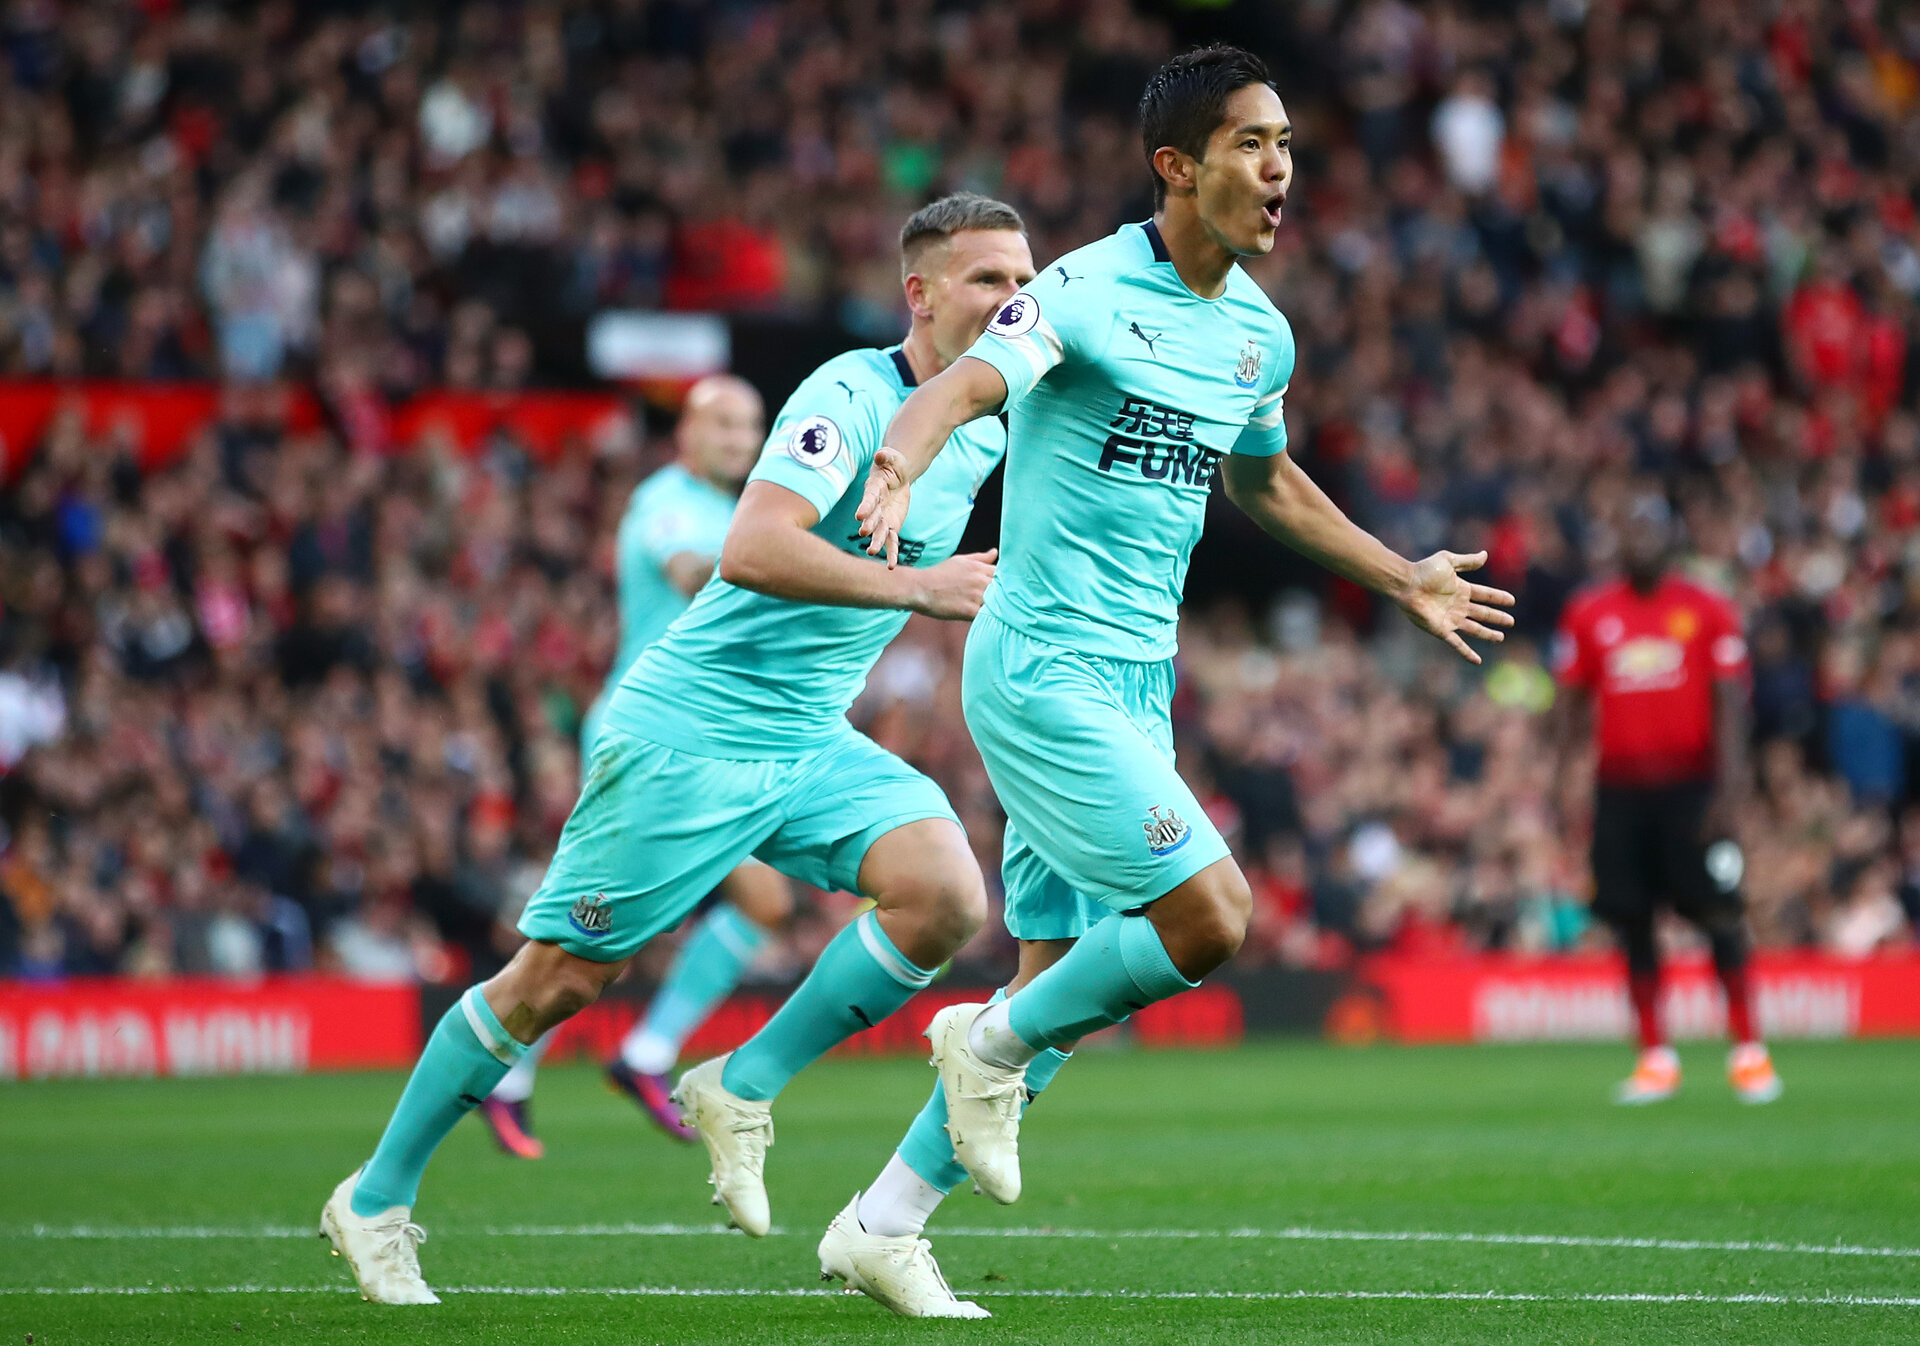 MANCHESTER, ENGLAND - OCTOBER 06:  Yoshinori Muto of Newcastle United celebrates after scoring his team's second goal during the Premier League match between Manchester United and Newcastle United at Old Trafford on October 6, 2018 in Manchester, United Kingdom.  (Photo by Clive Brunskill/Getty Images)